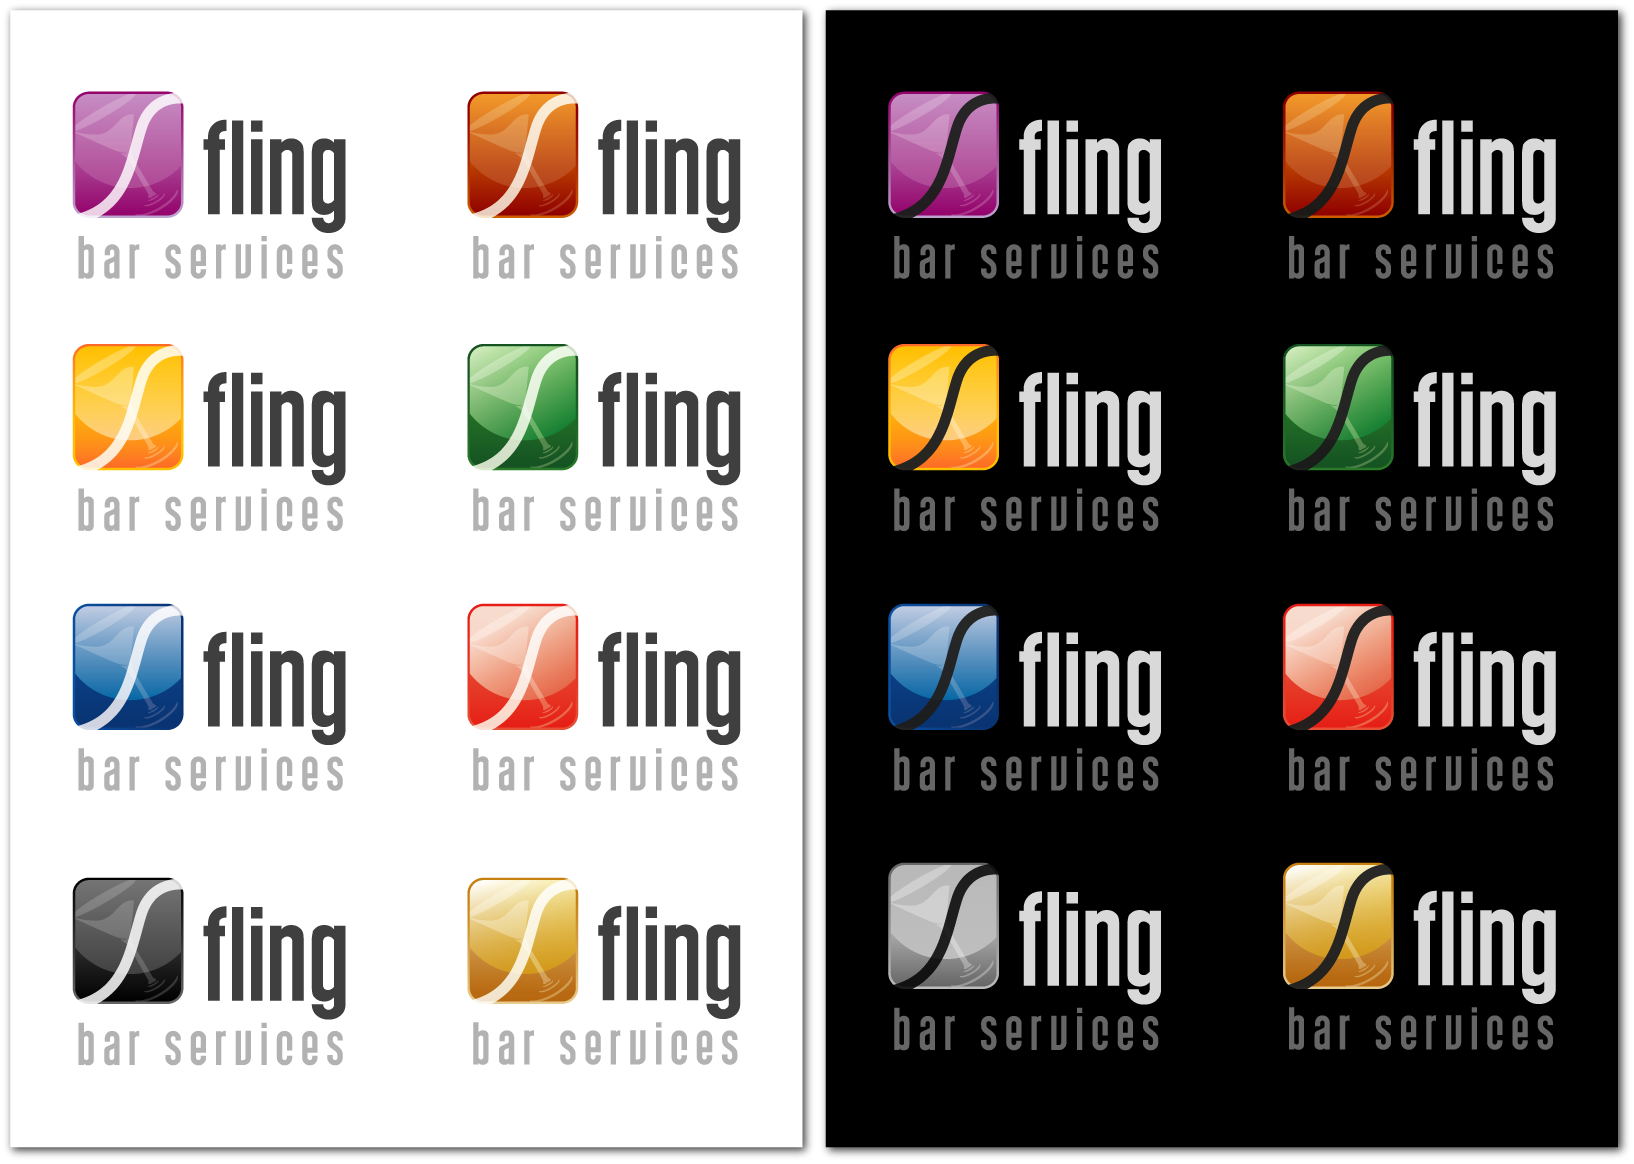 New logo wanted for Fling Bar Services